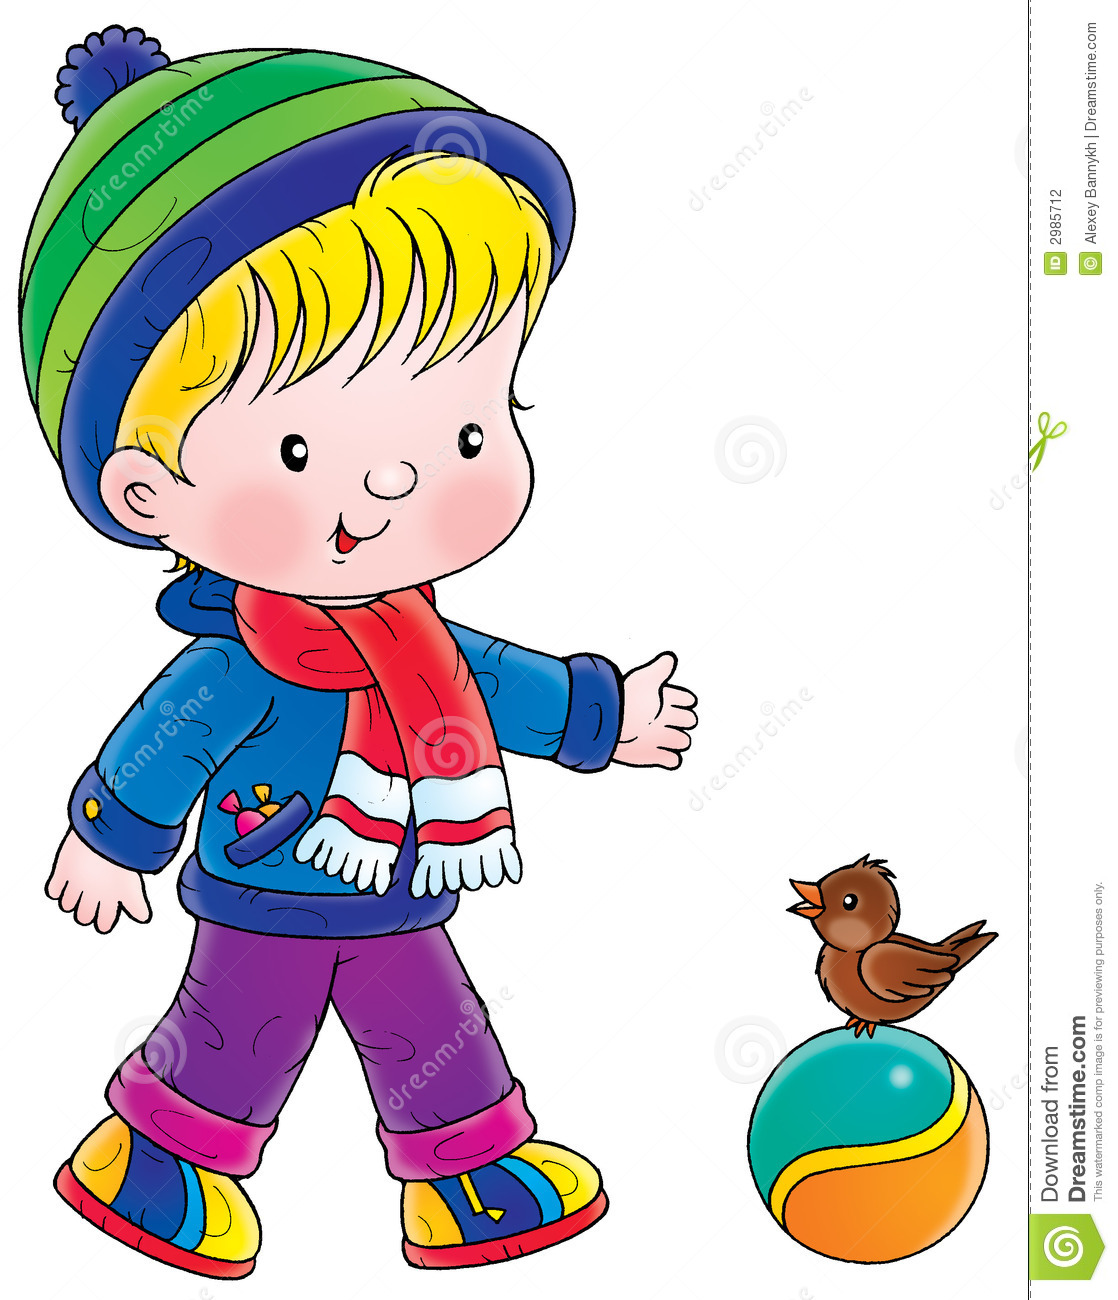 Boys clipart toddler. Children walking clip art